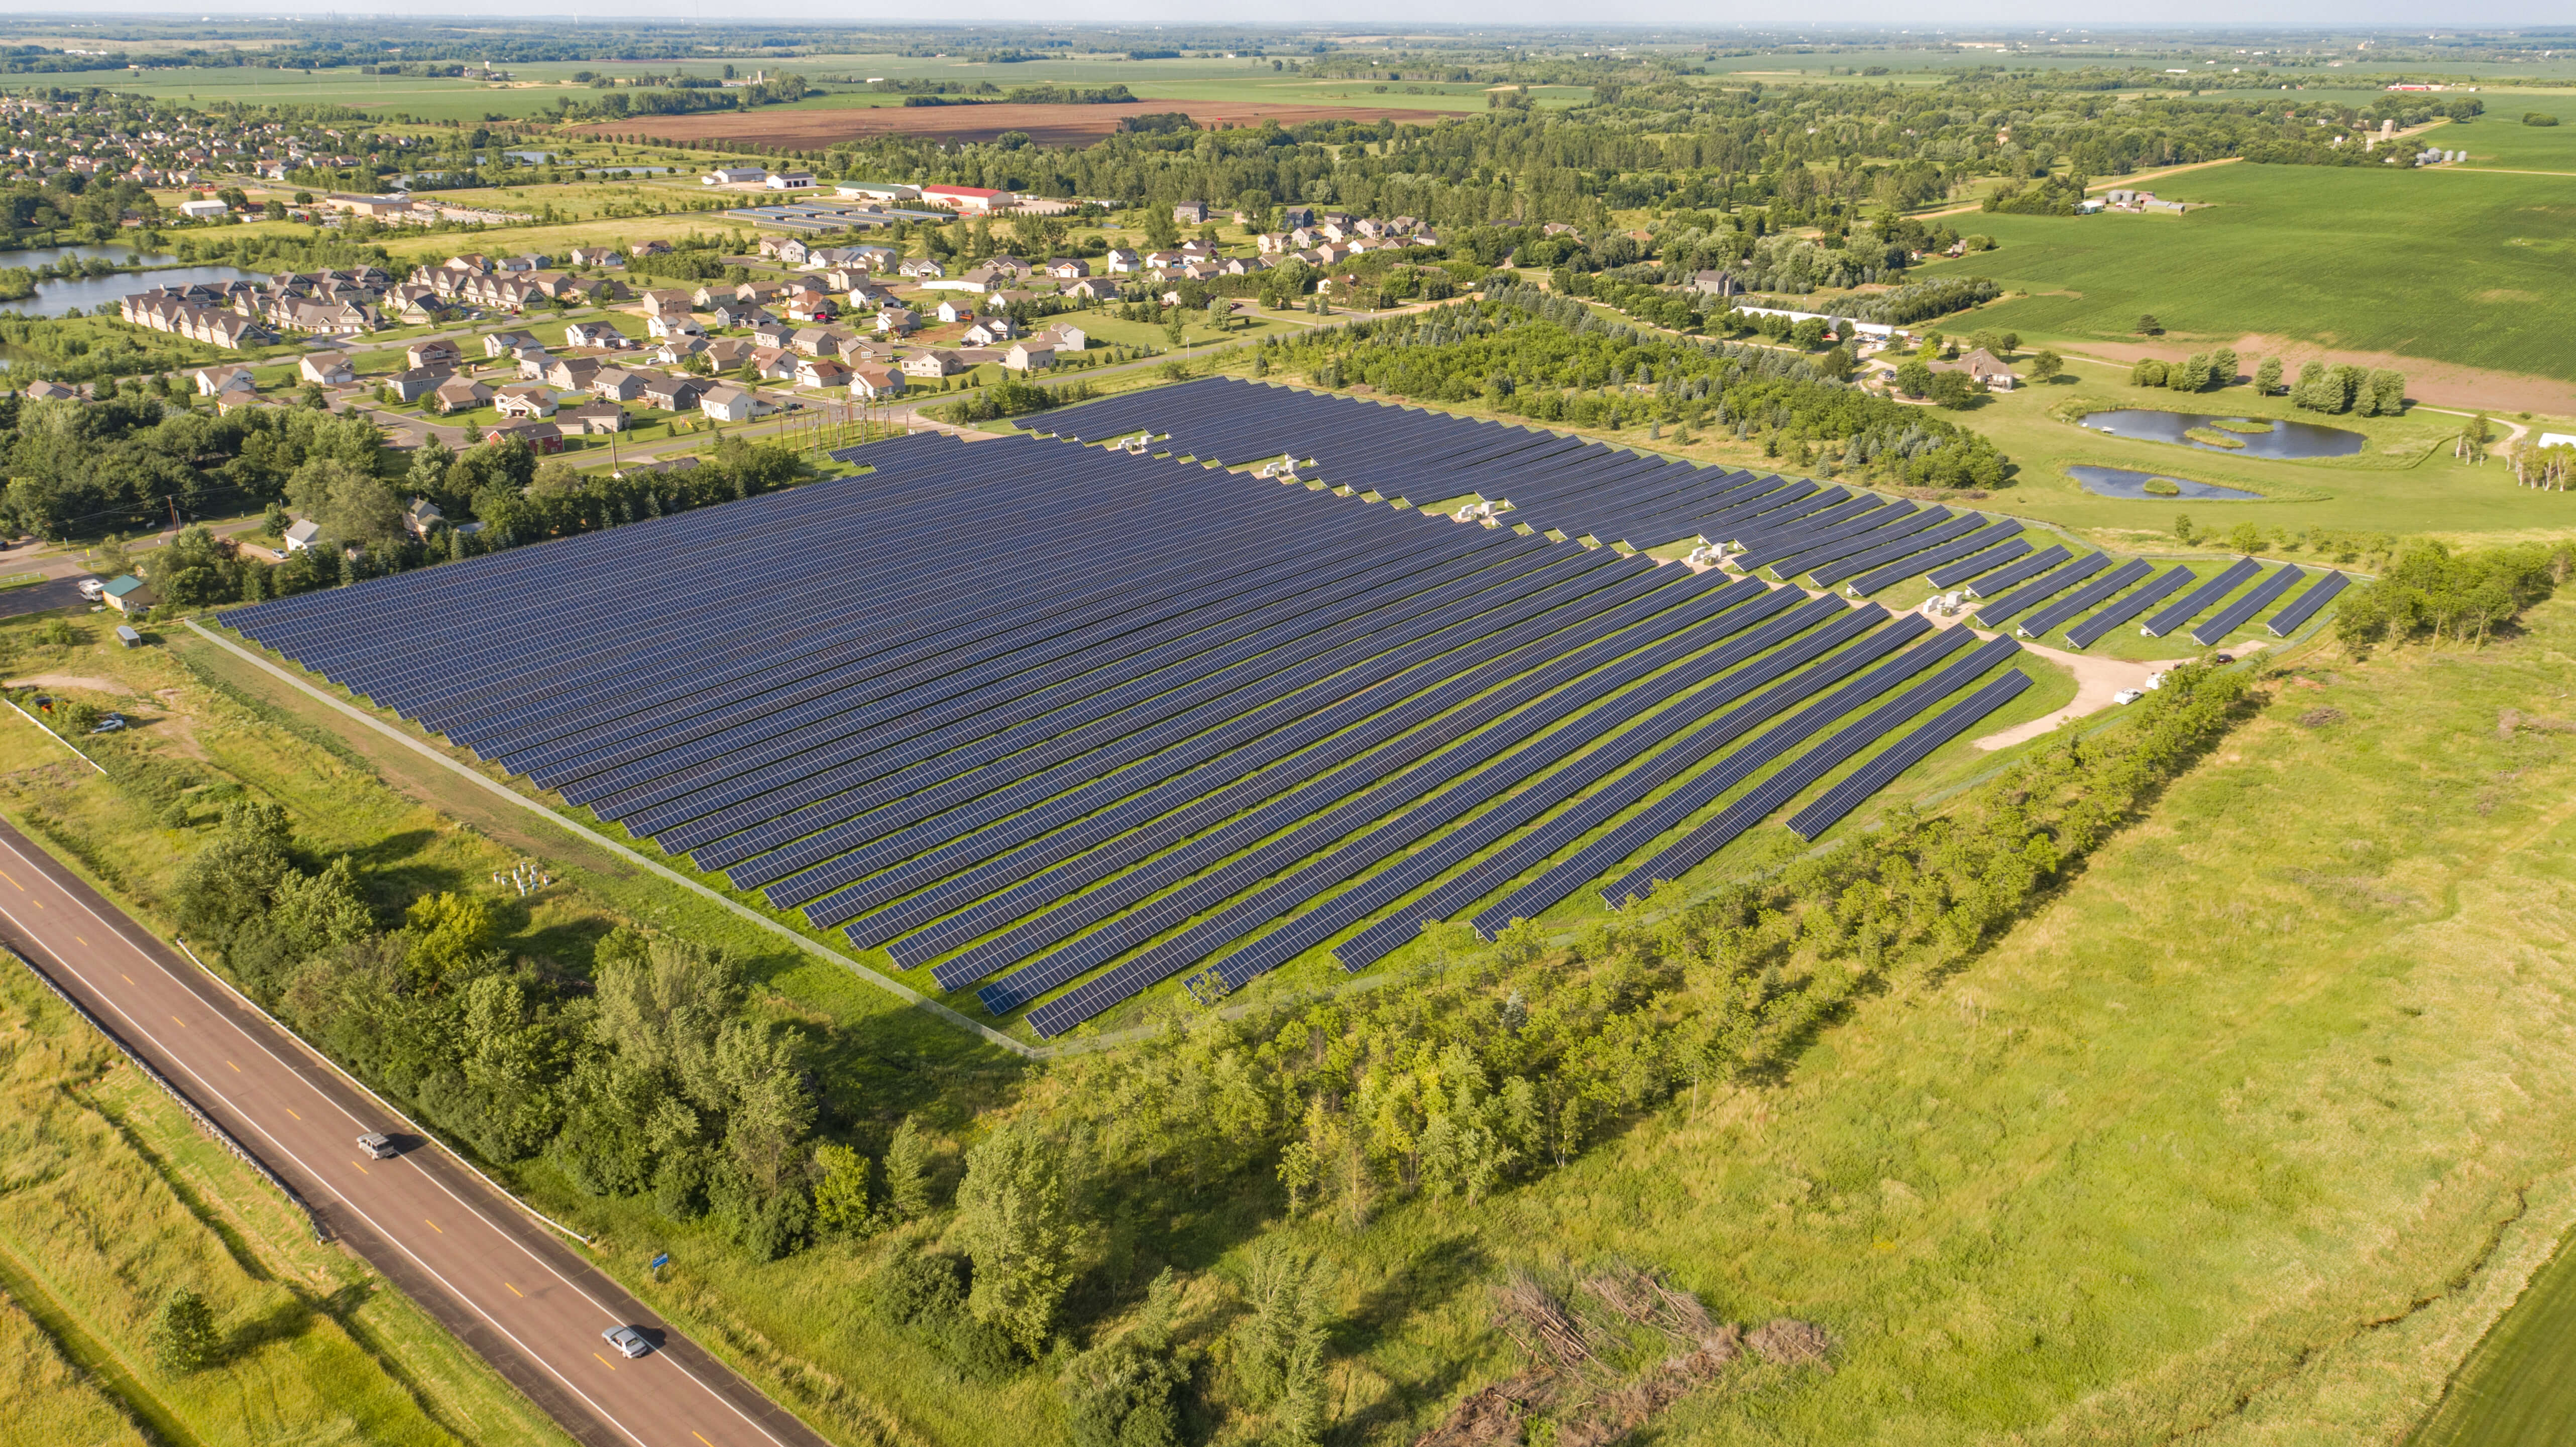 Xcel Energy S Solar Rewards Community Program Now Has 40 Active Gardens Delivering More Than 100 Mw Of Clean Renewable To Minnesota